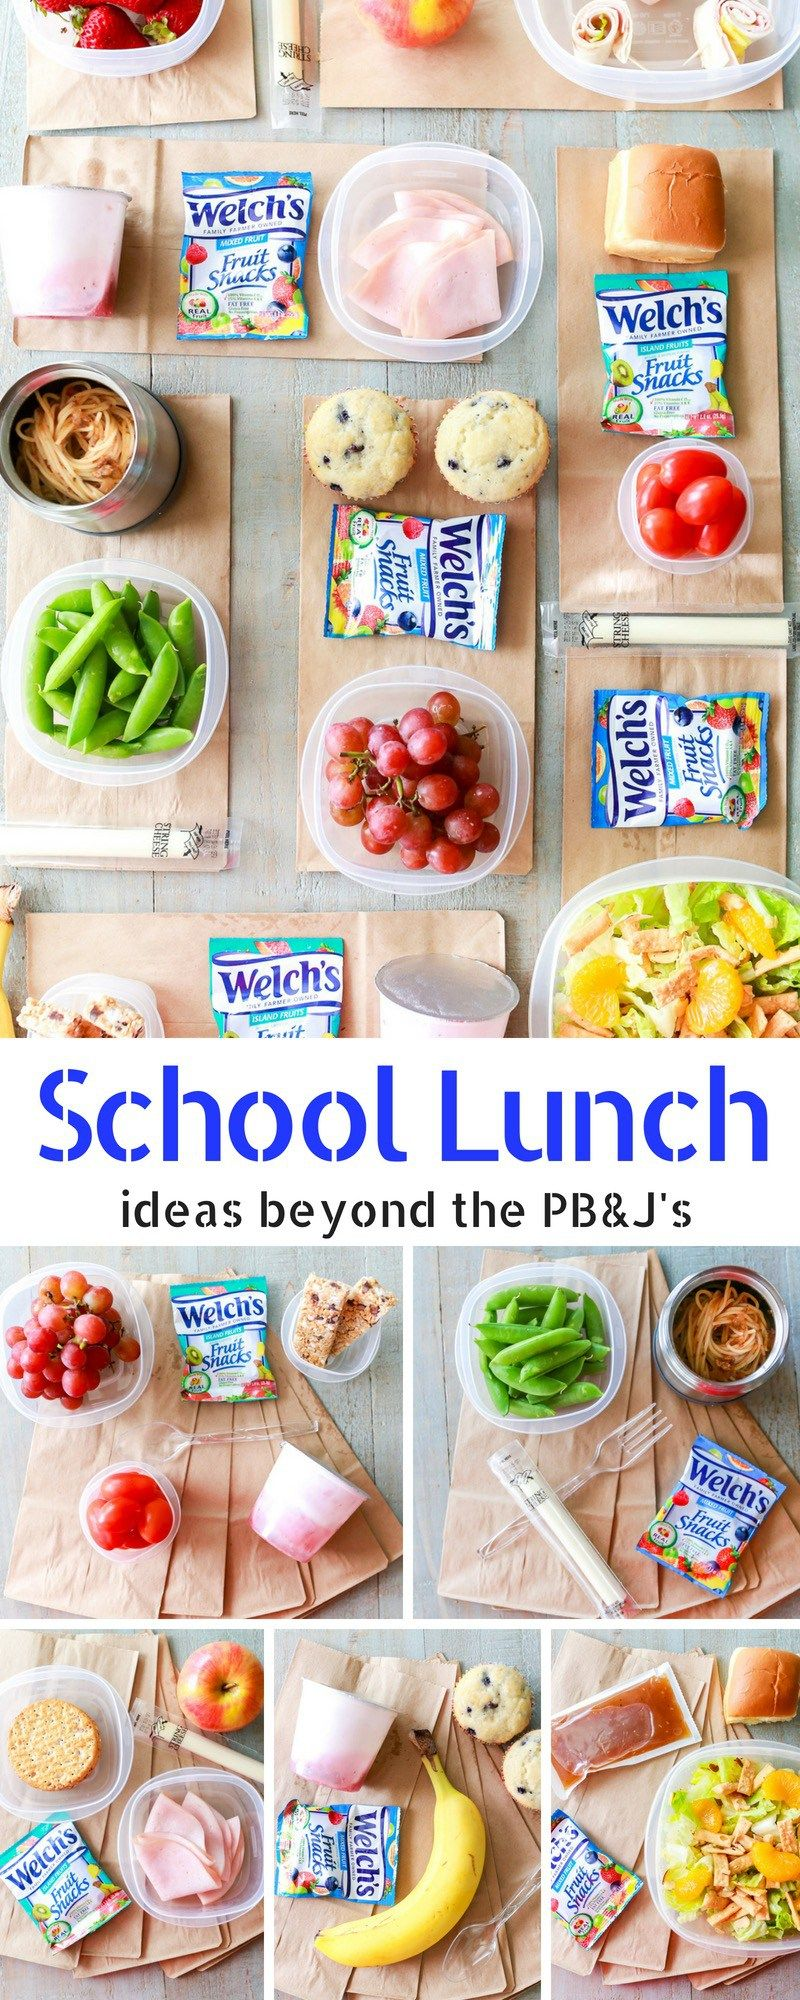 School Lunch Ideas beyond Sandwiches images